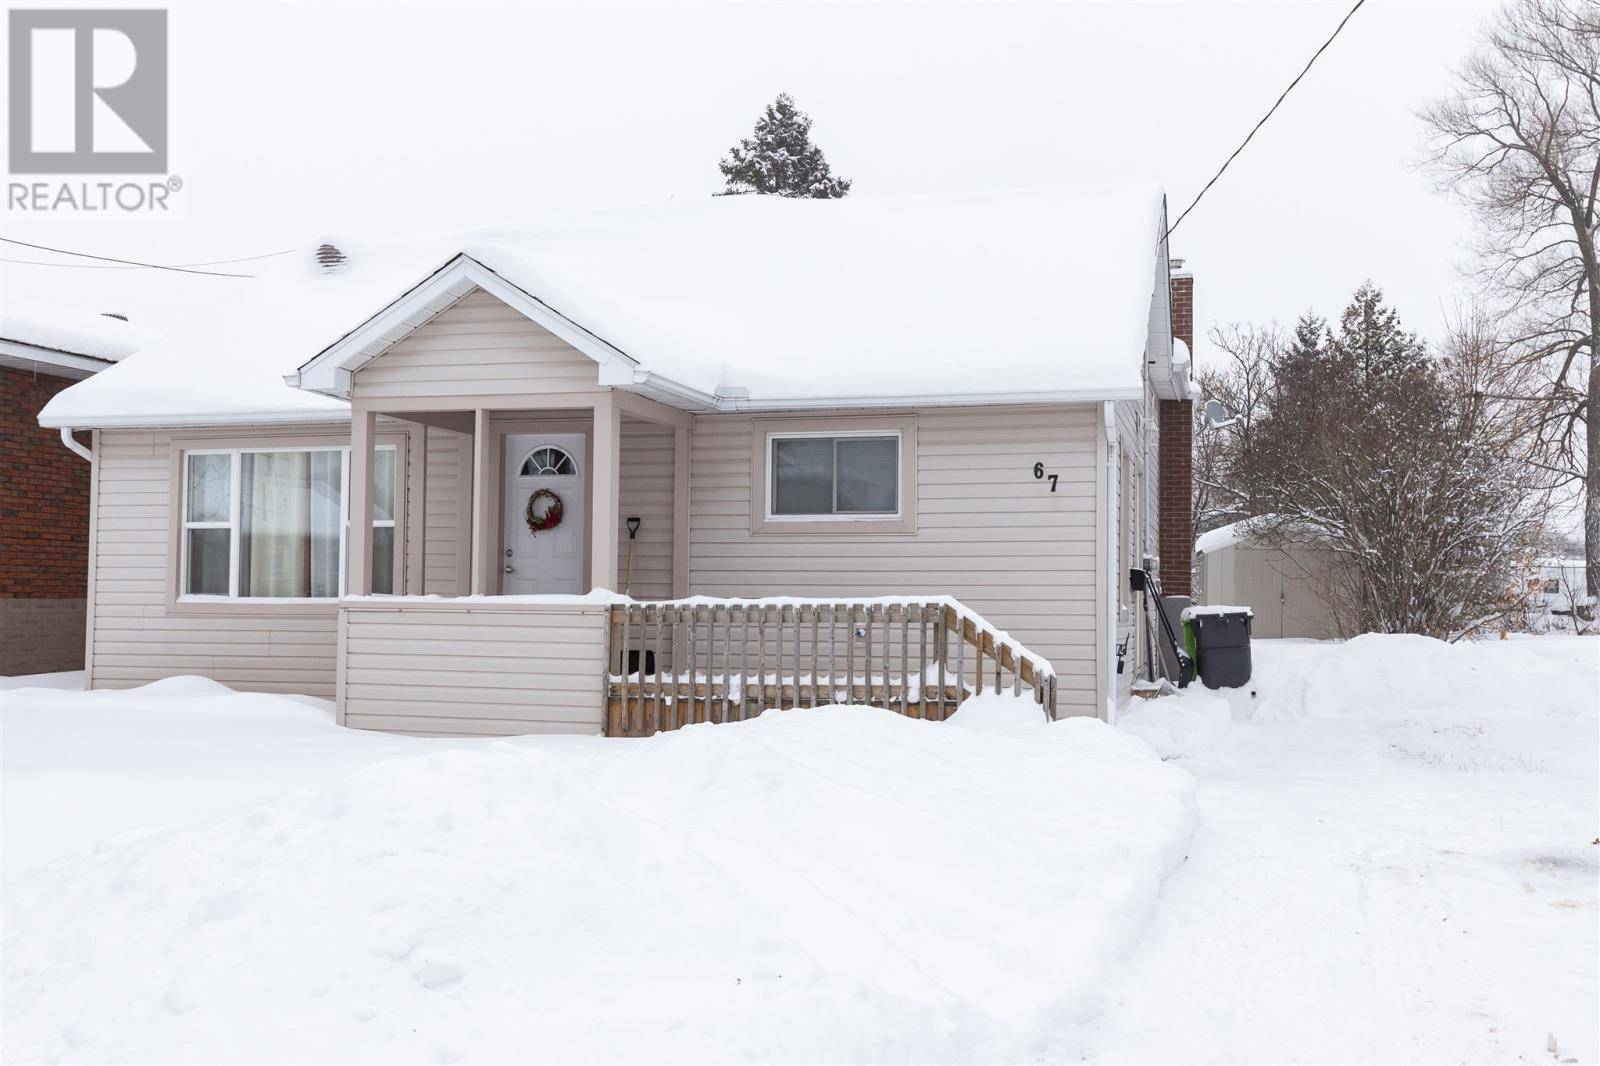 House for sale at 67 Anita Blvd Sault Ste. Marie Ontario - MLS: SM127598